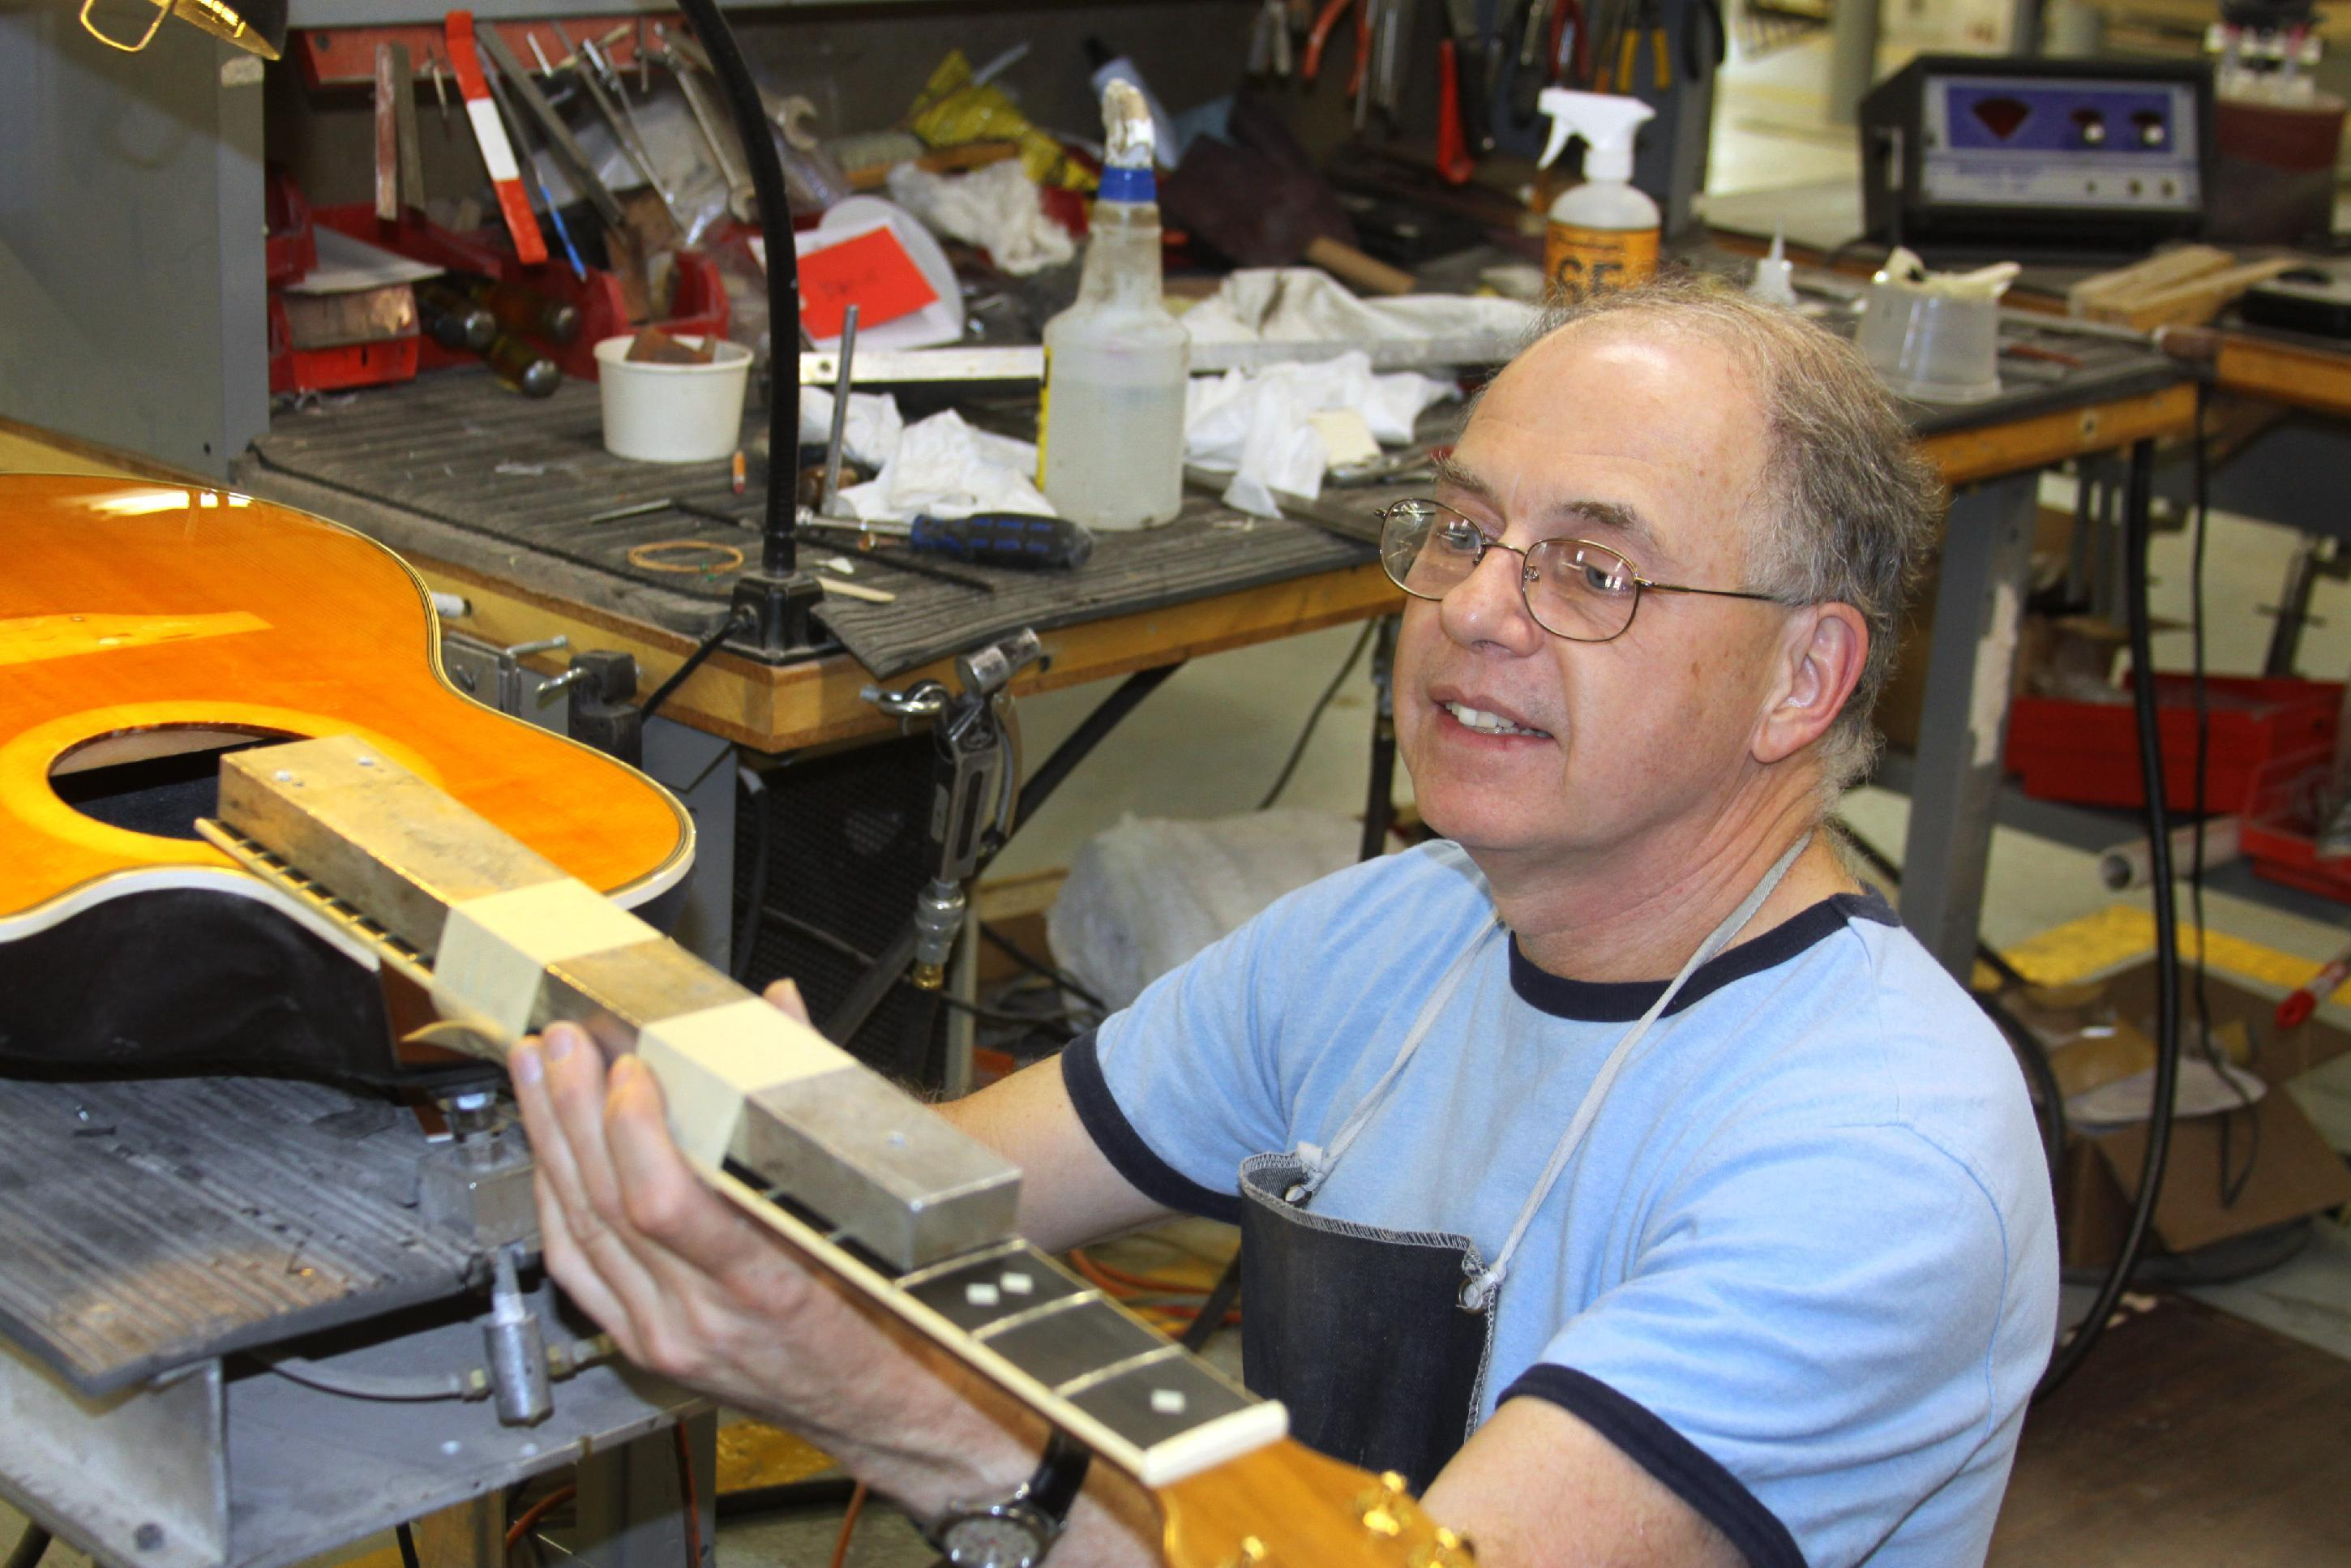 Production of renowned Ovation guitars to resume in US